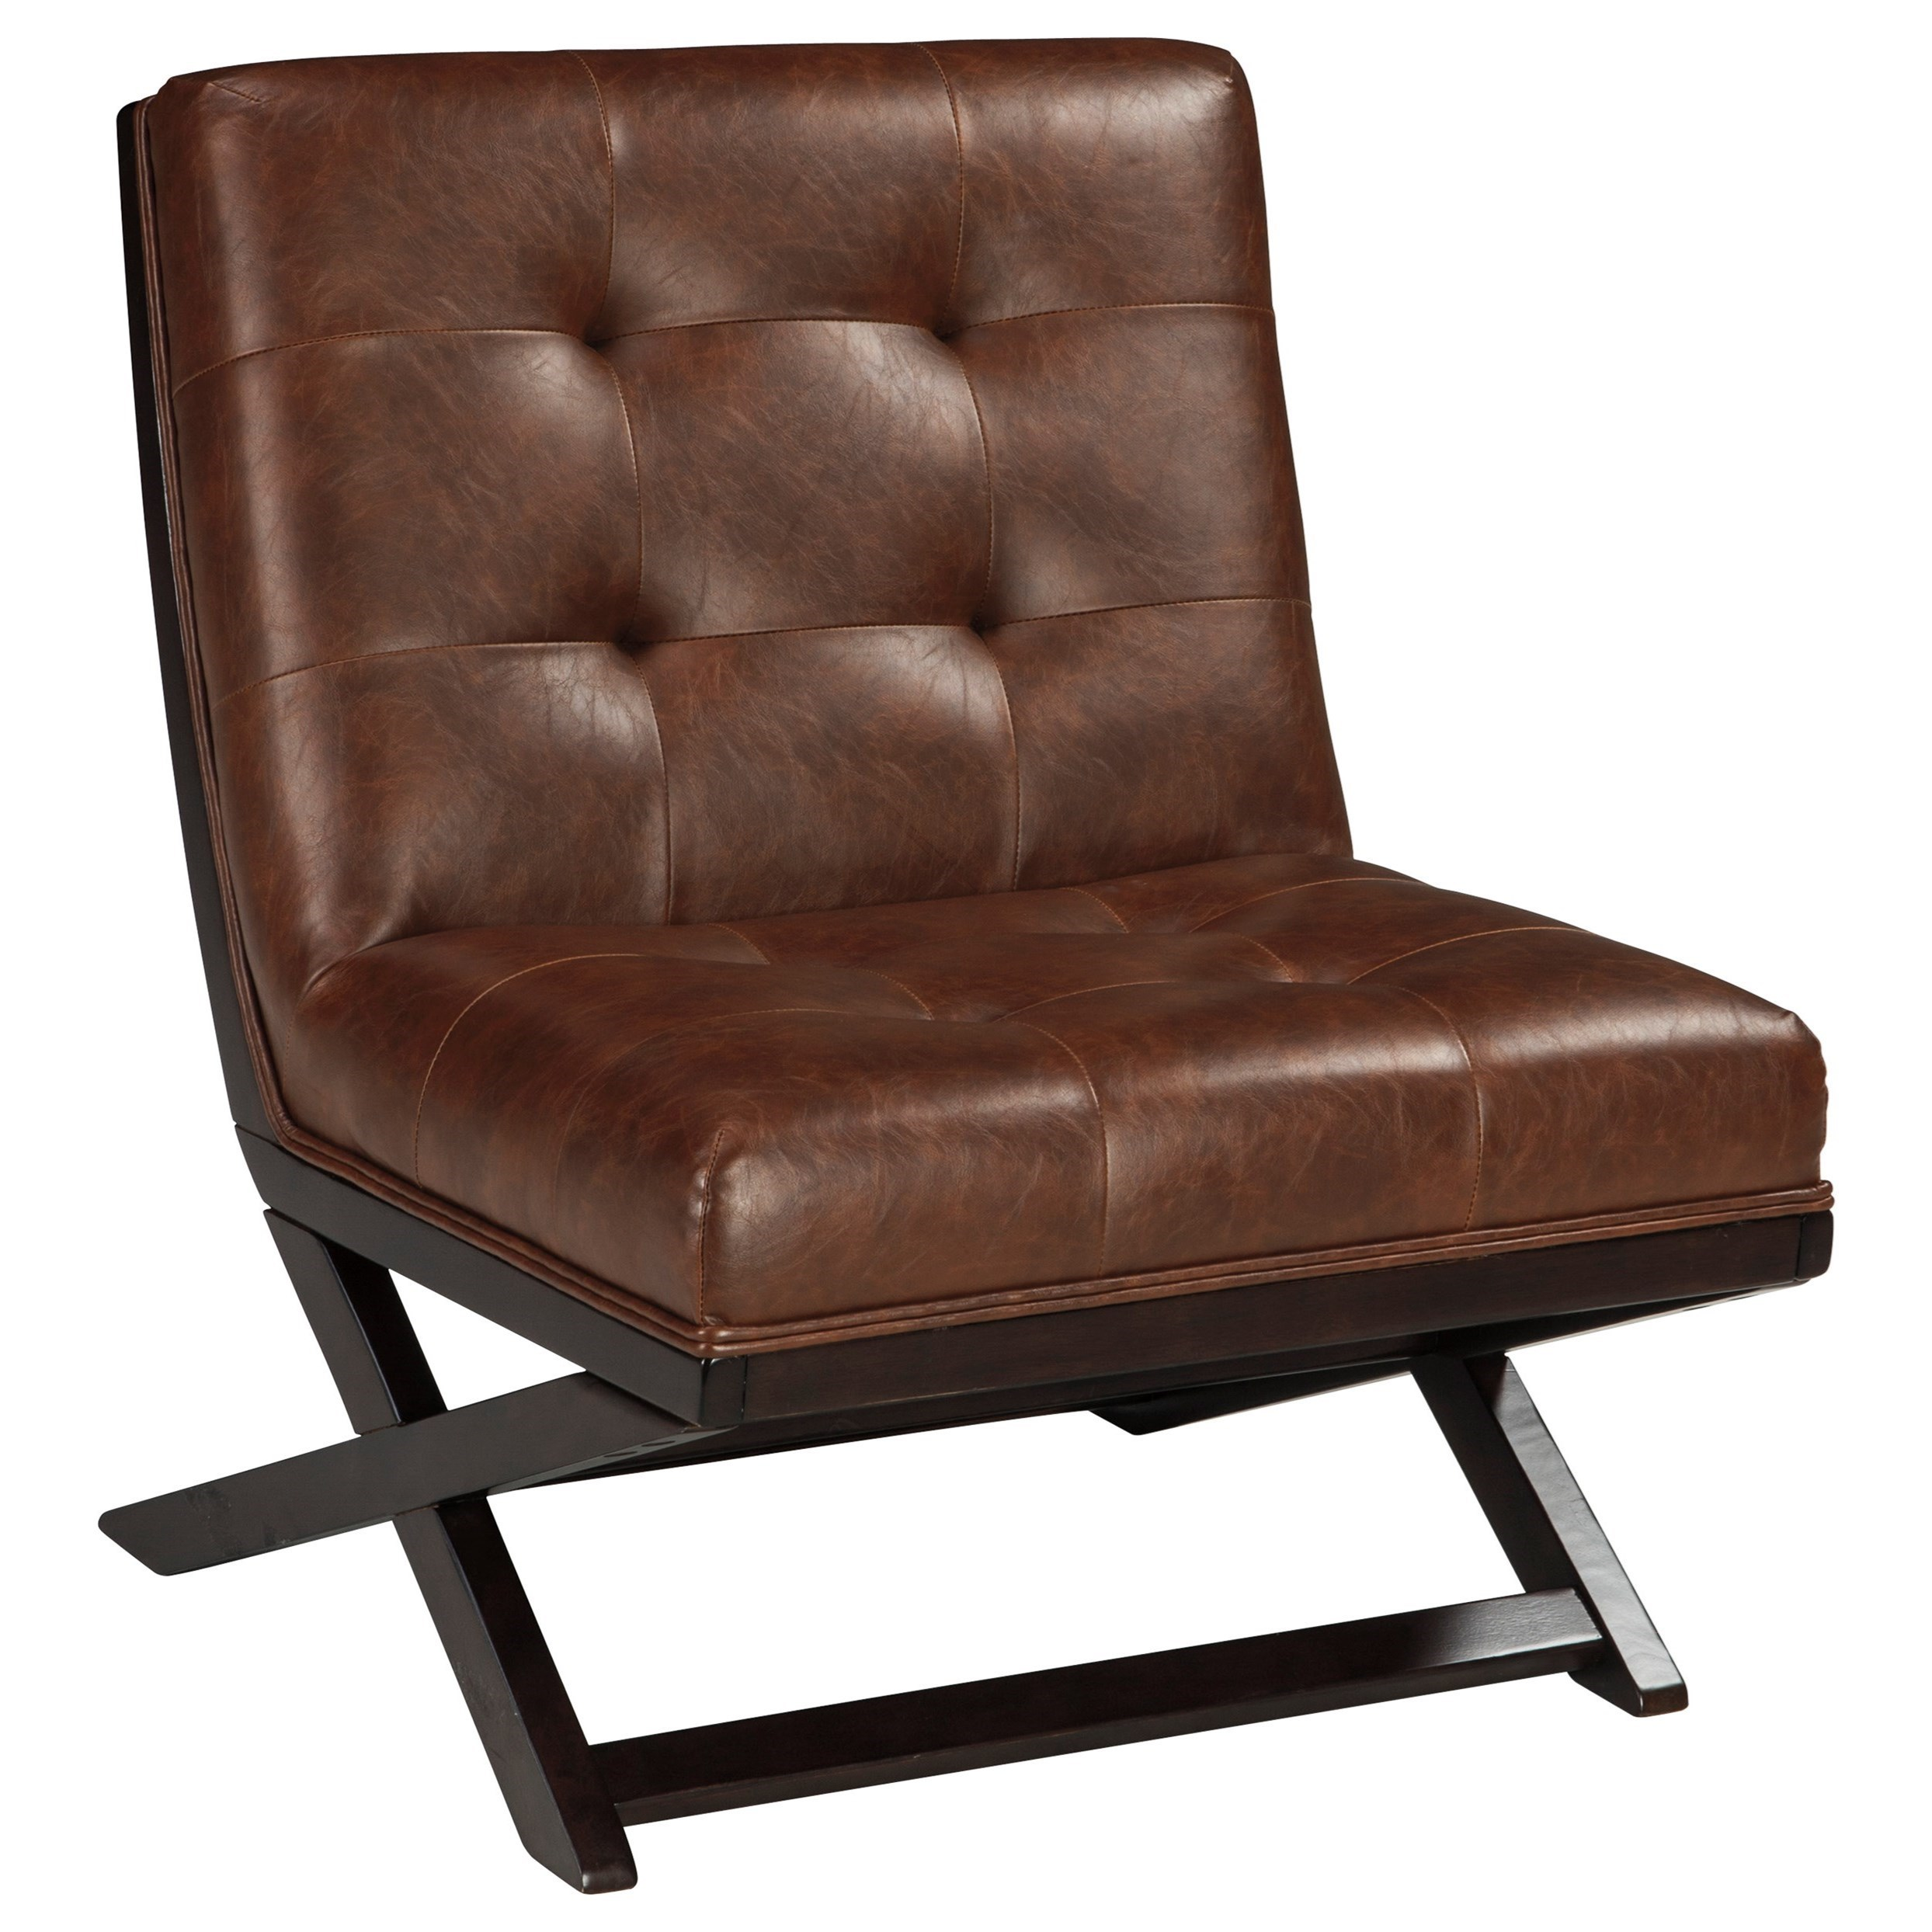 Attirant Signature Design By Ashley Sidewinder Wood X Base Armless Accent Chair With  Brown Faux Leather